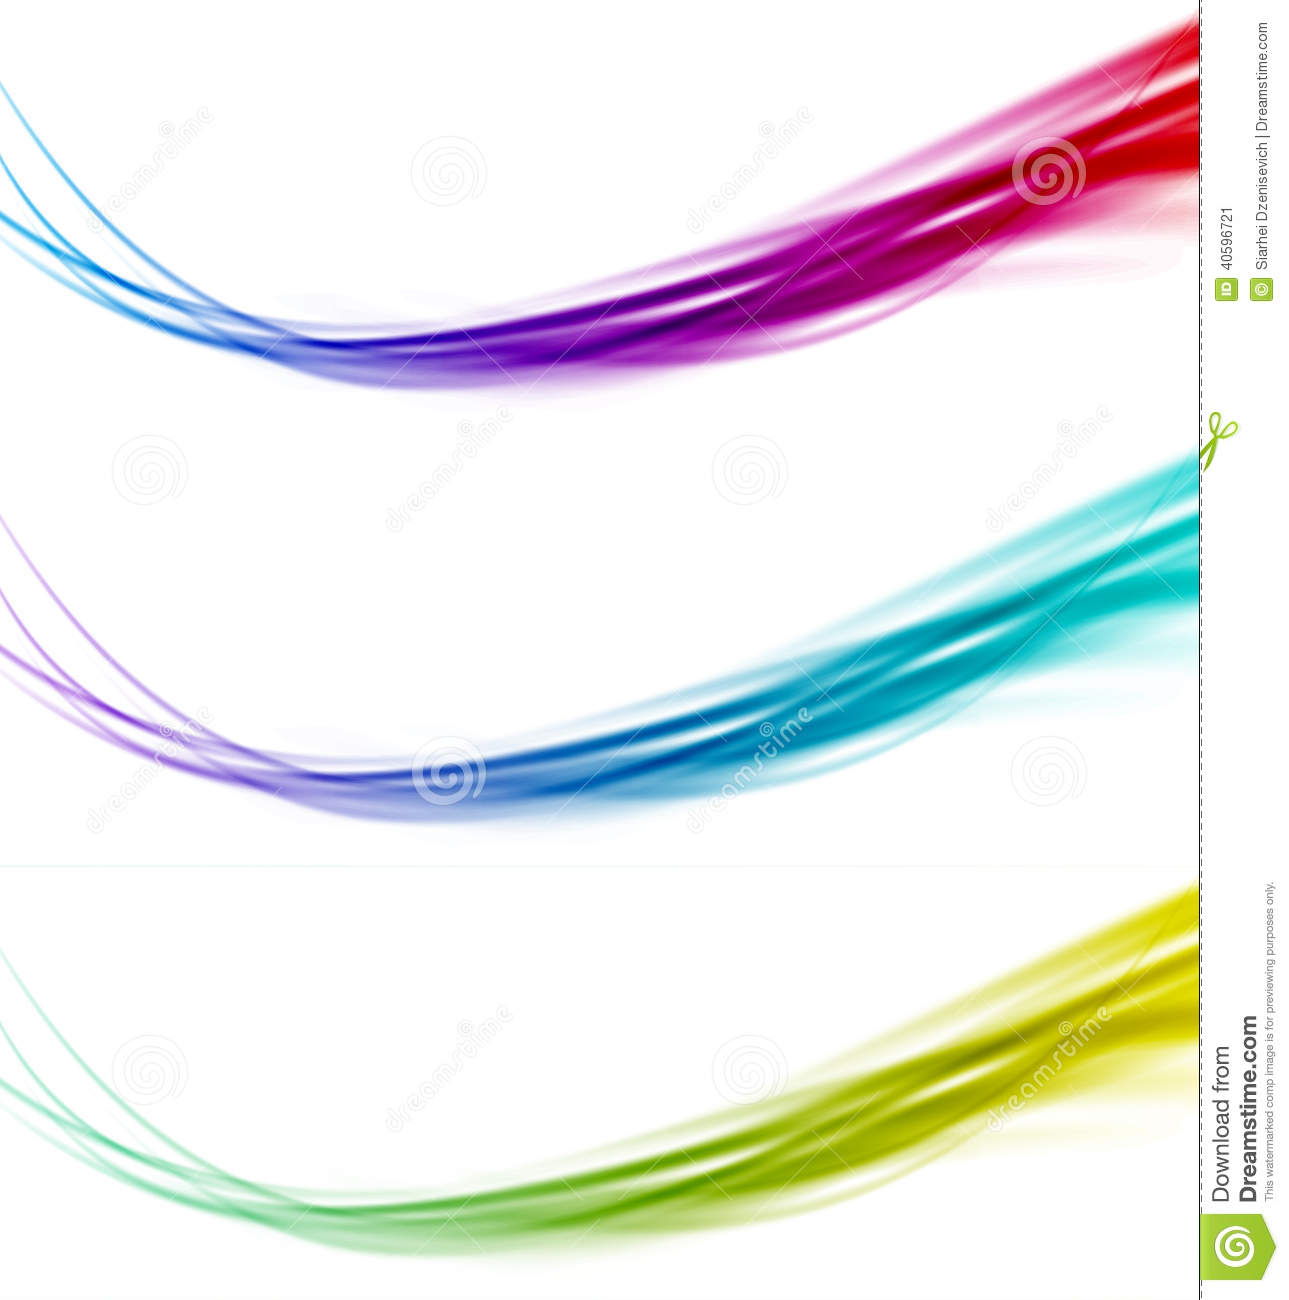 15 Abstract Lines Vector Border Frame Images - Abstract ...